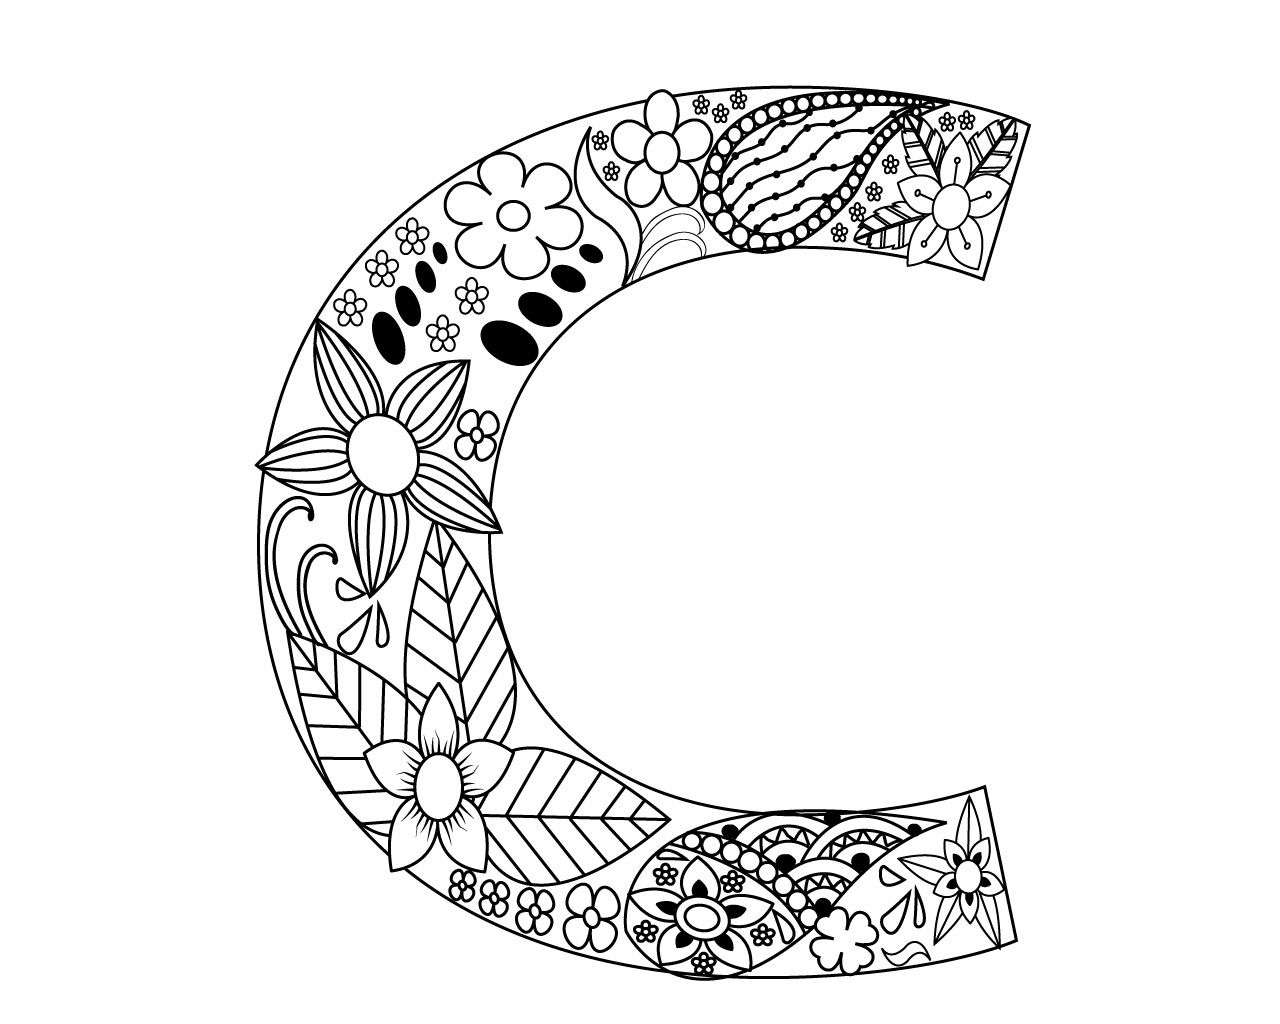 Letter C Coloring Pages For Adults Coloring Letters Letter C Coloring Pages Coloring Pages